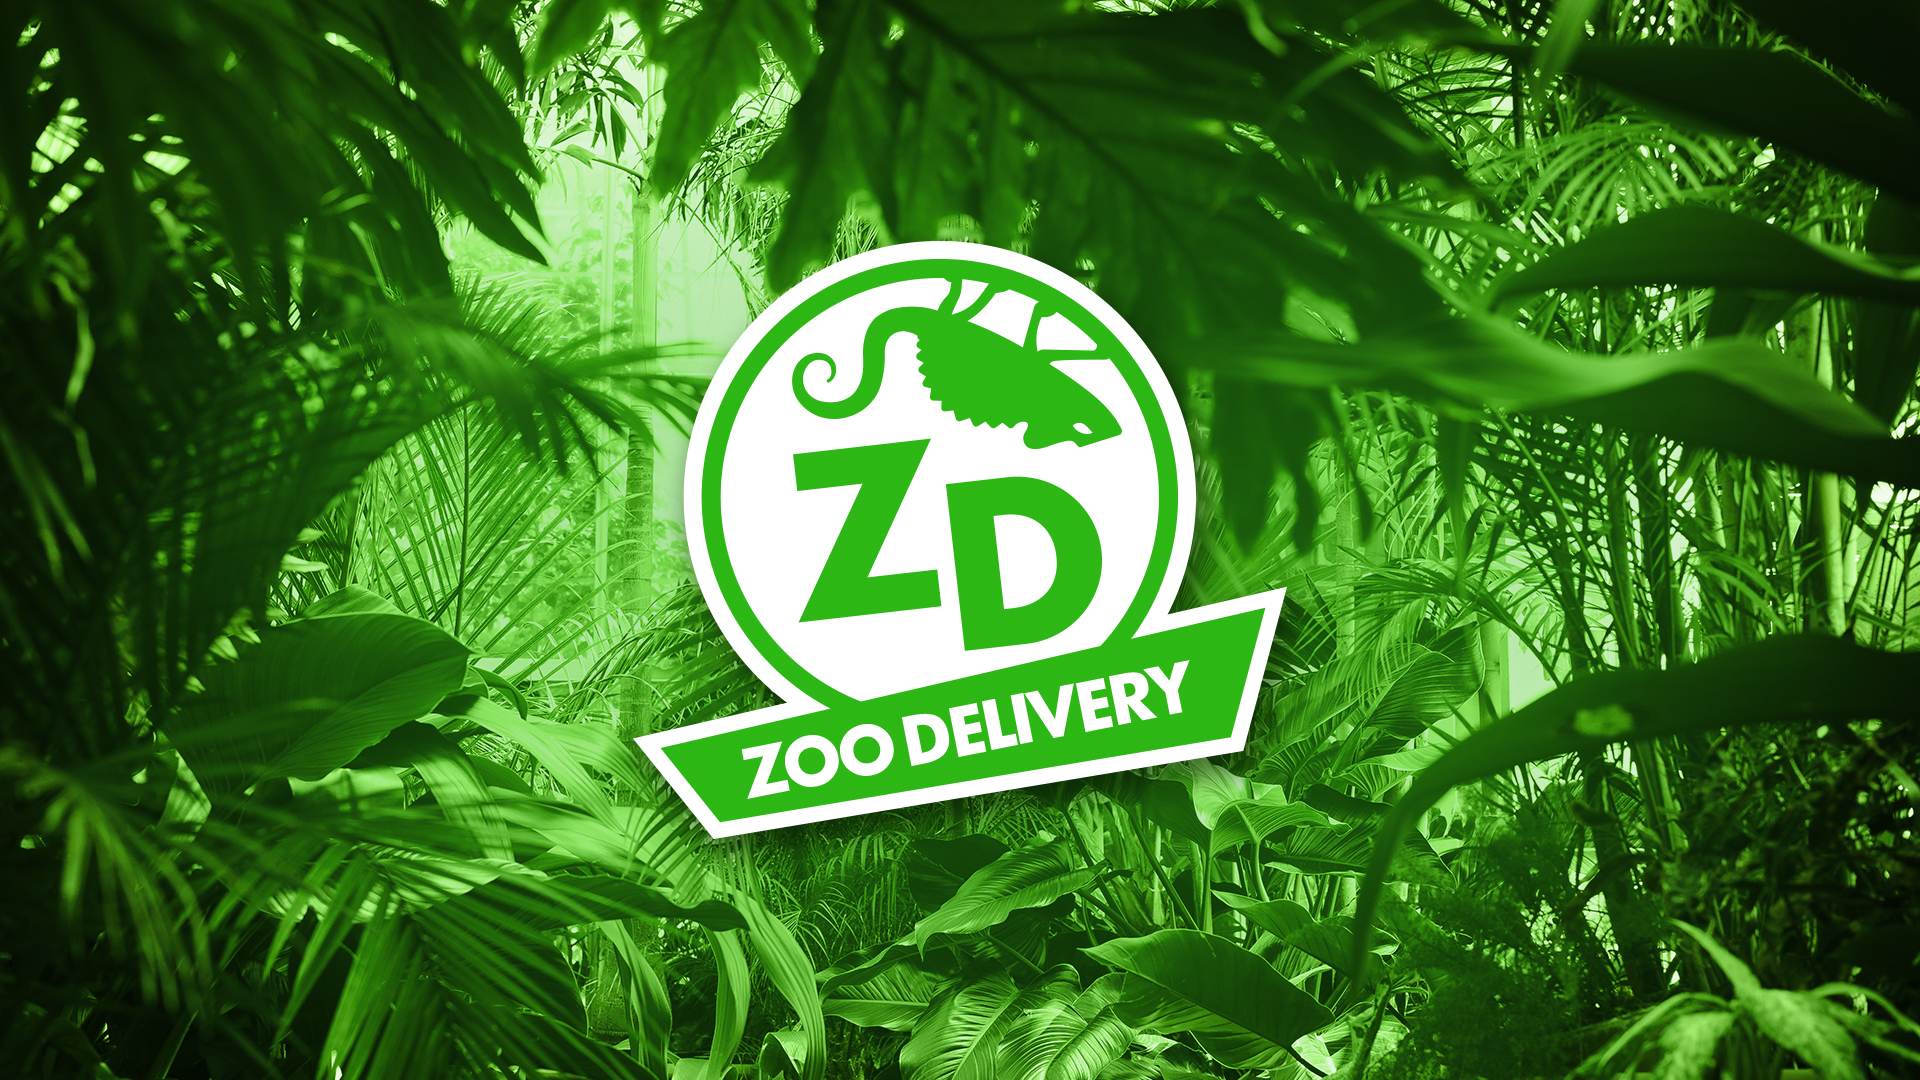 TMF - CAR - Zoo Delivery